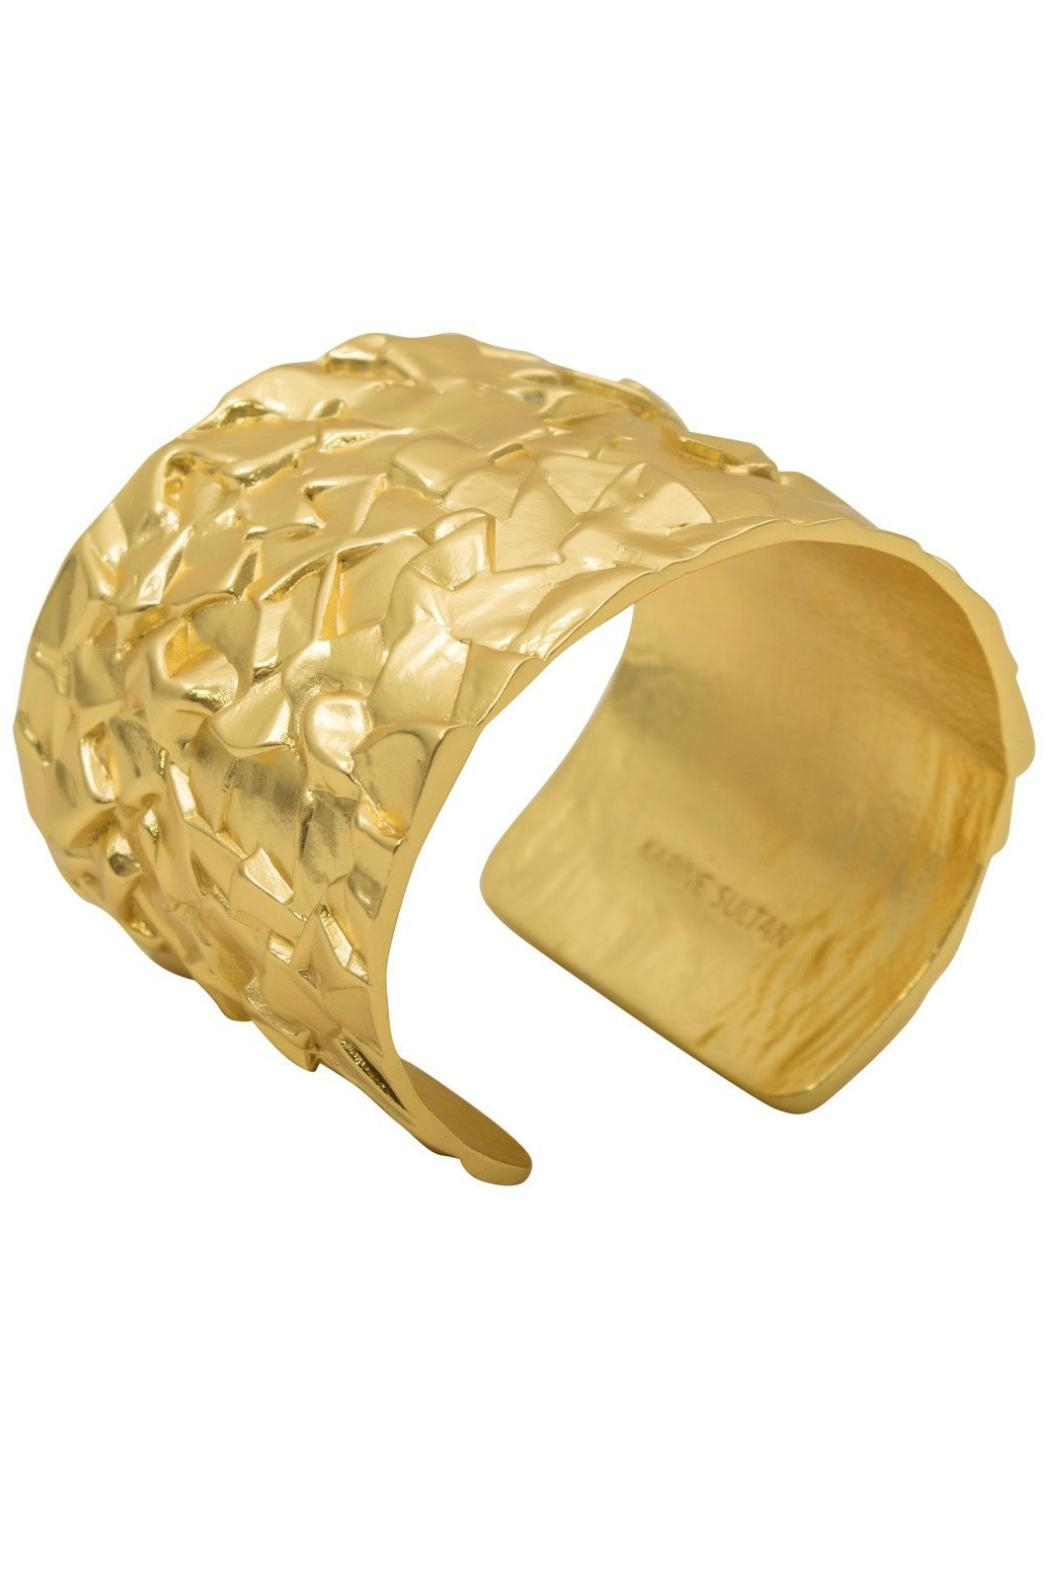 Karine Sultan Paris Nubby Antique Cuff - Front Cropped Image